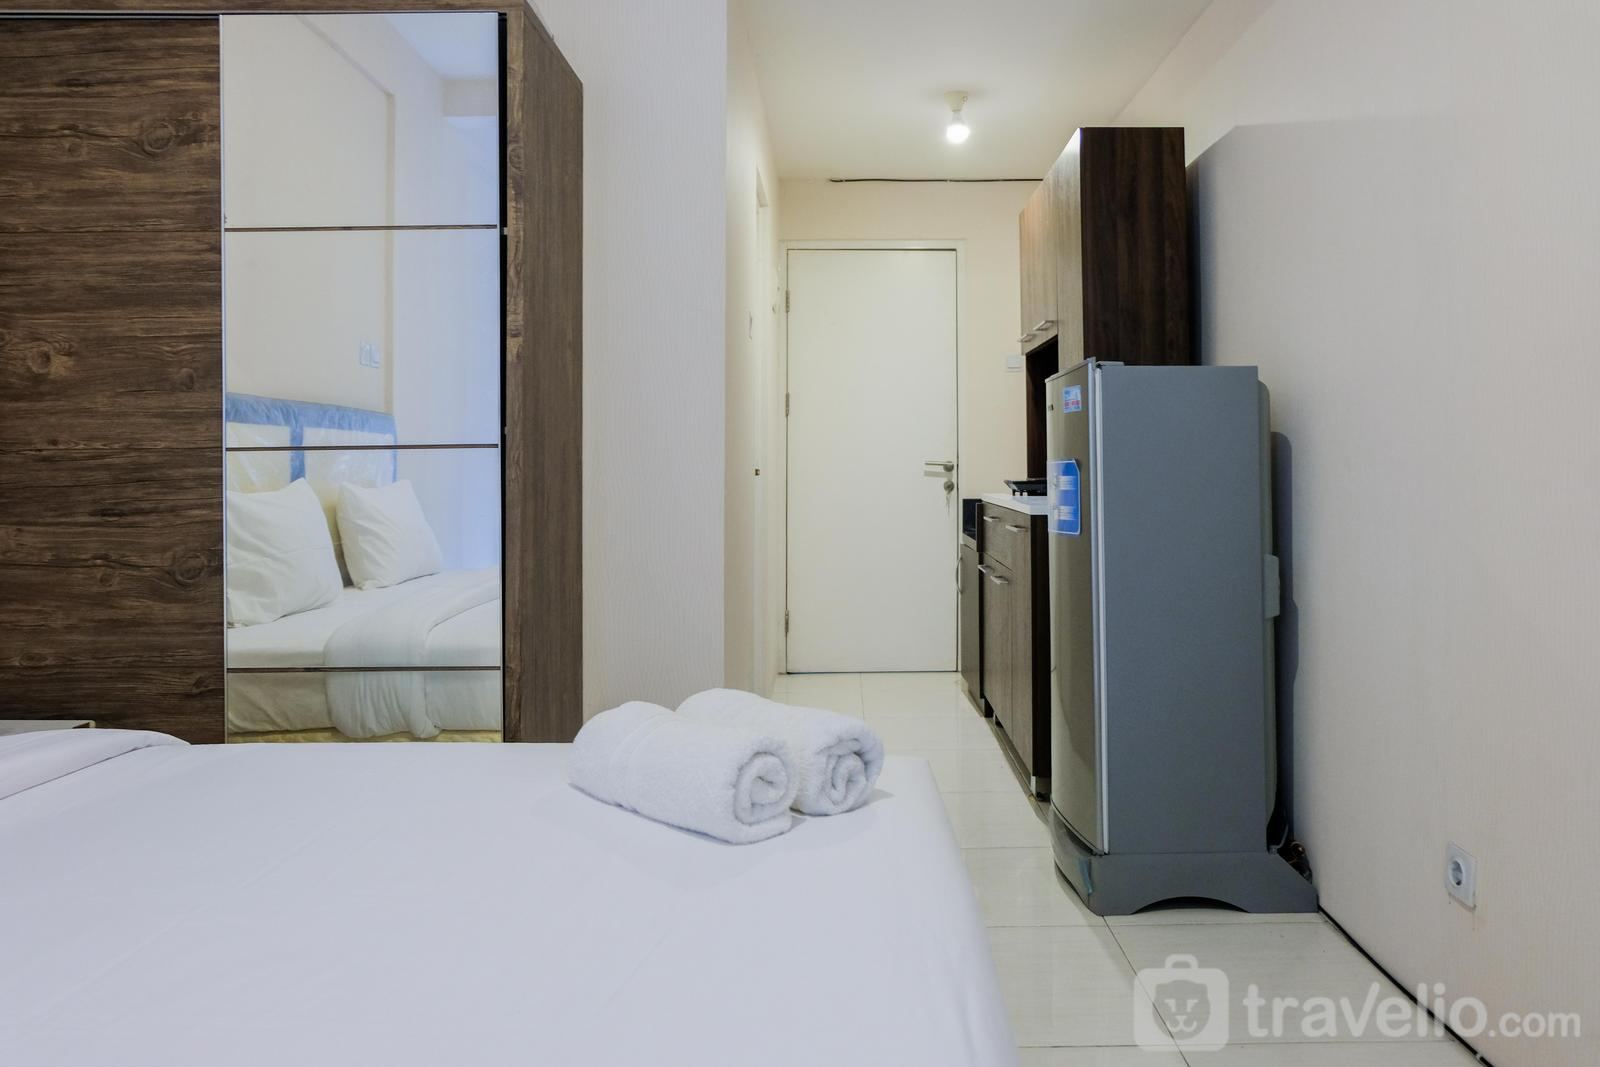 Skylounge Tamansari - Enjoy Stay @ Studio Room Skylounge Apartment near Airport By Travelio